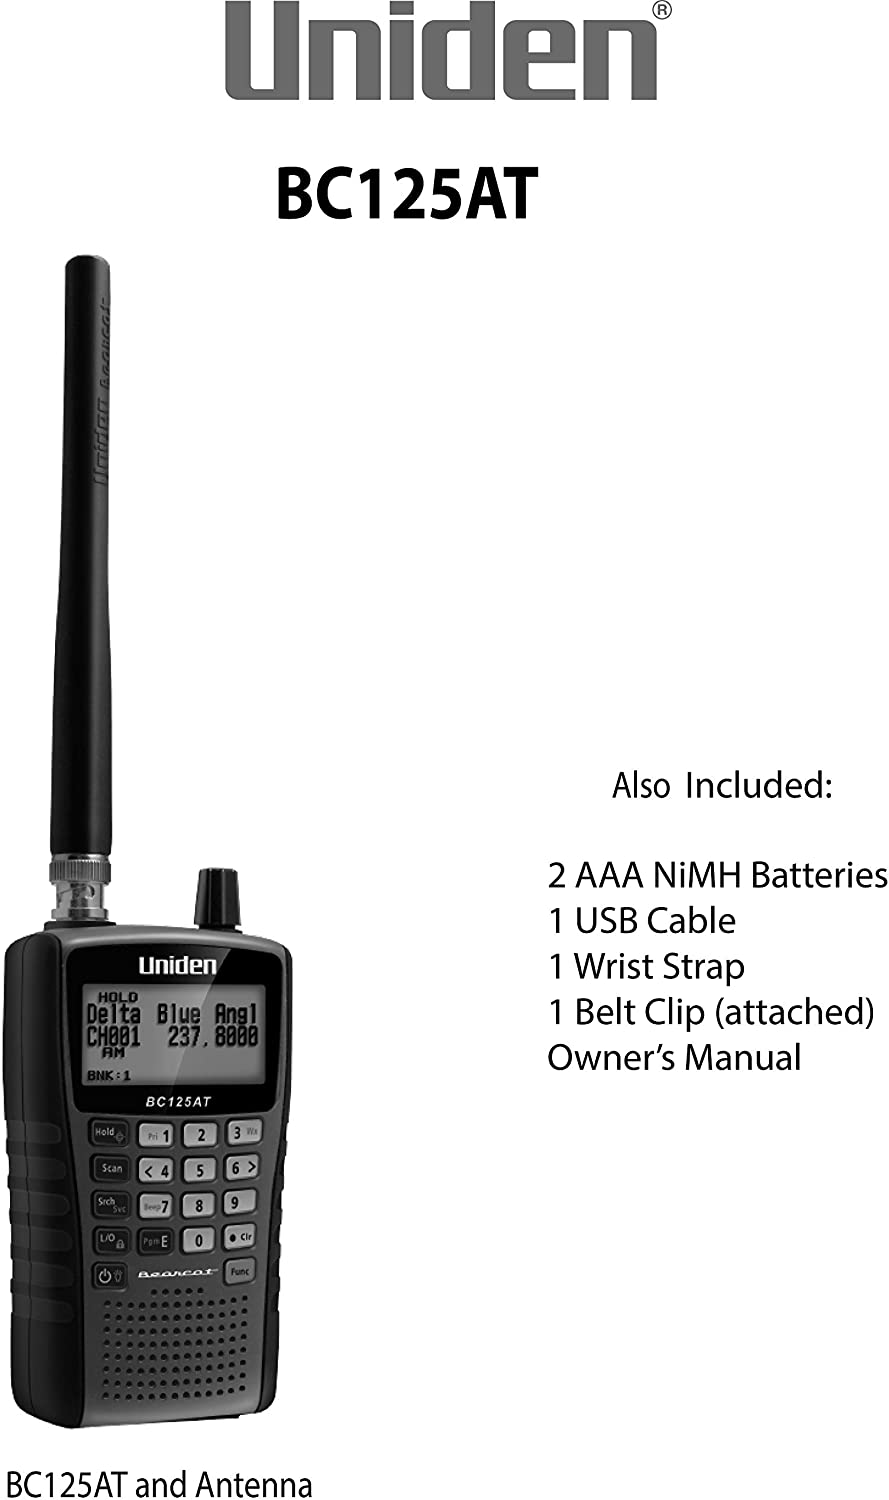 Public Safety Uniden Bearcat BC125AT Handheld Scanner and Auto Racing Scanner,/ Lightweight Portable Design Military Aircraft Police Marine Fire Emergency 500 Alpha-Tagged channels